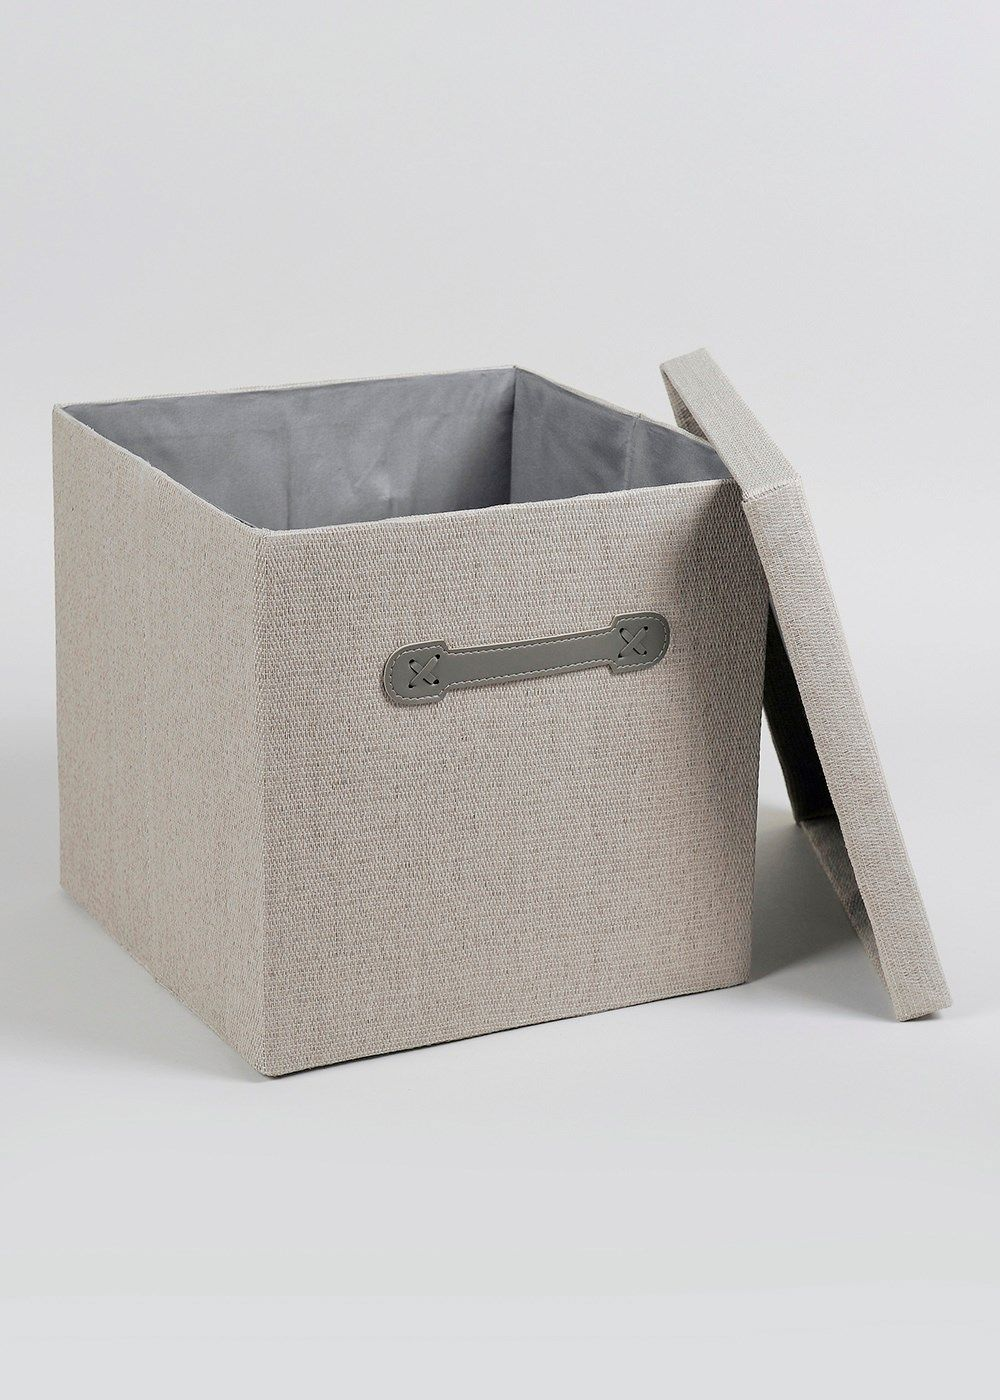 Foldable Fabric Storage Box (33cm X 33cm X 31cm)   Matalan